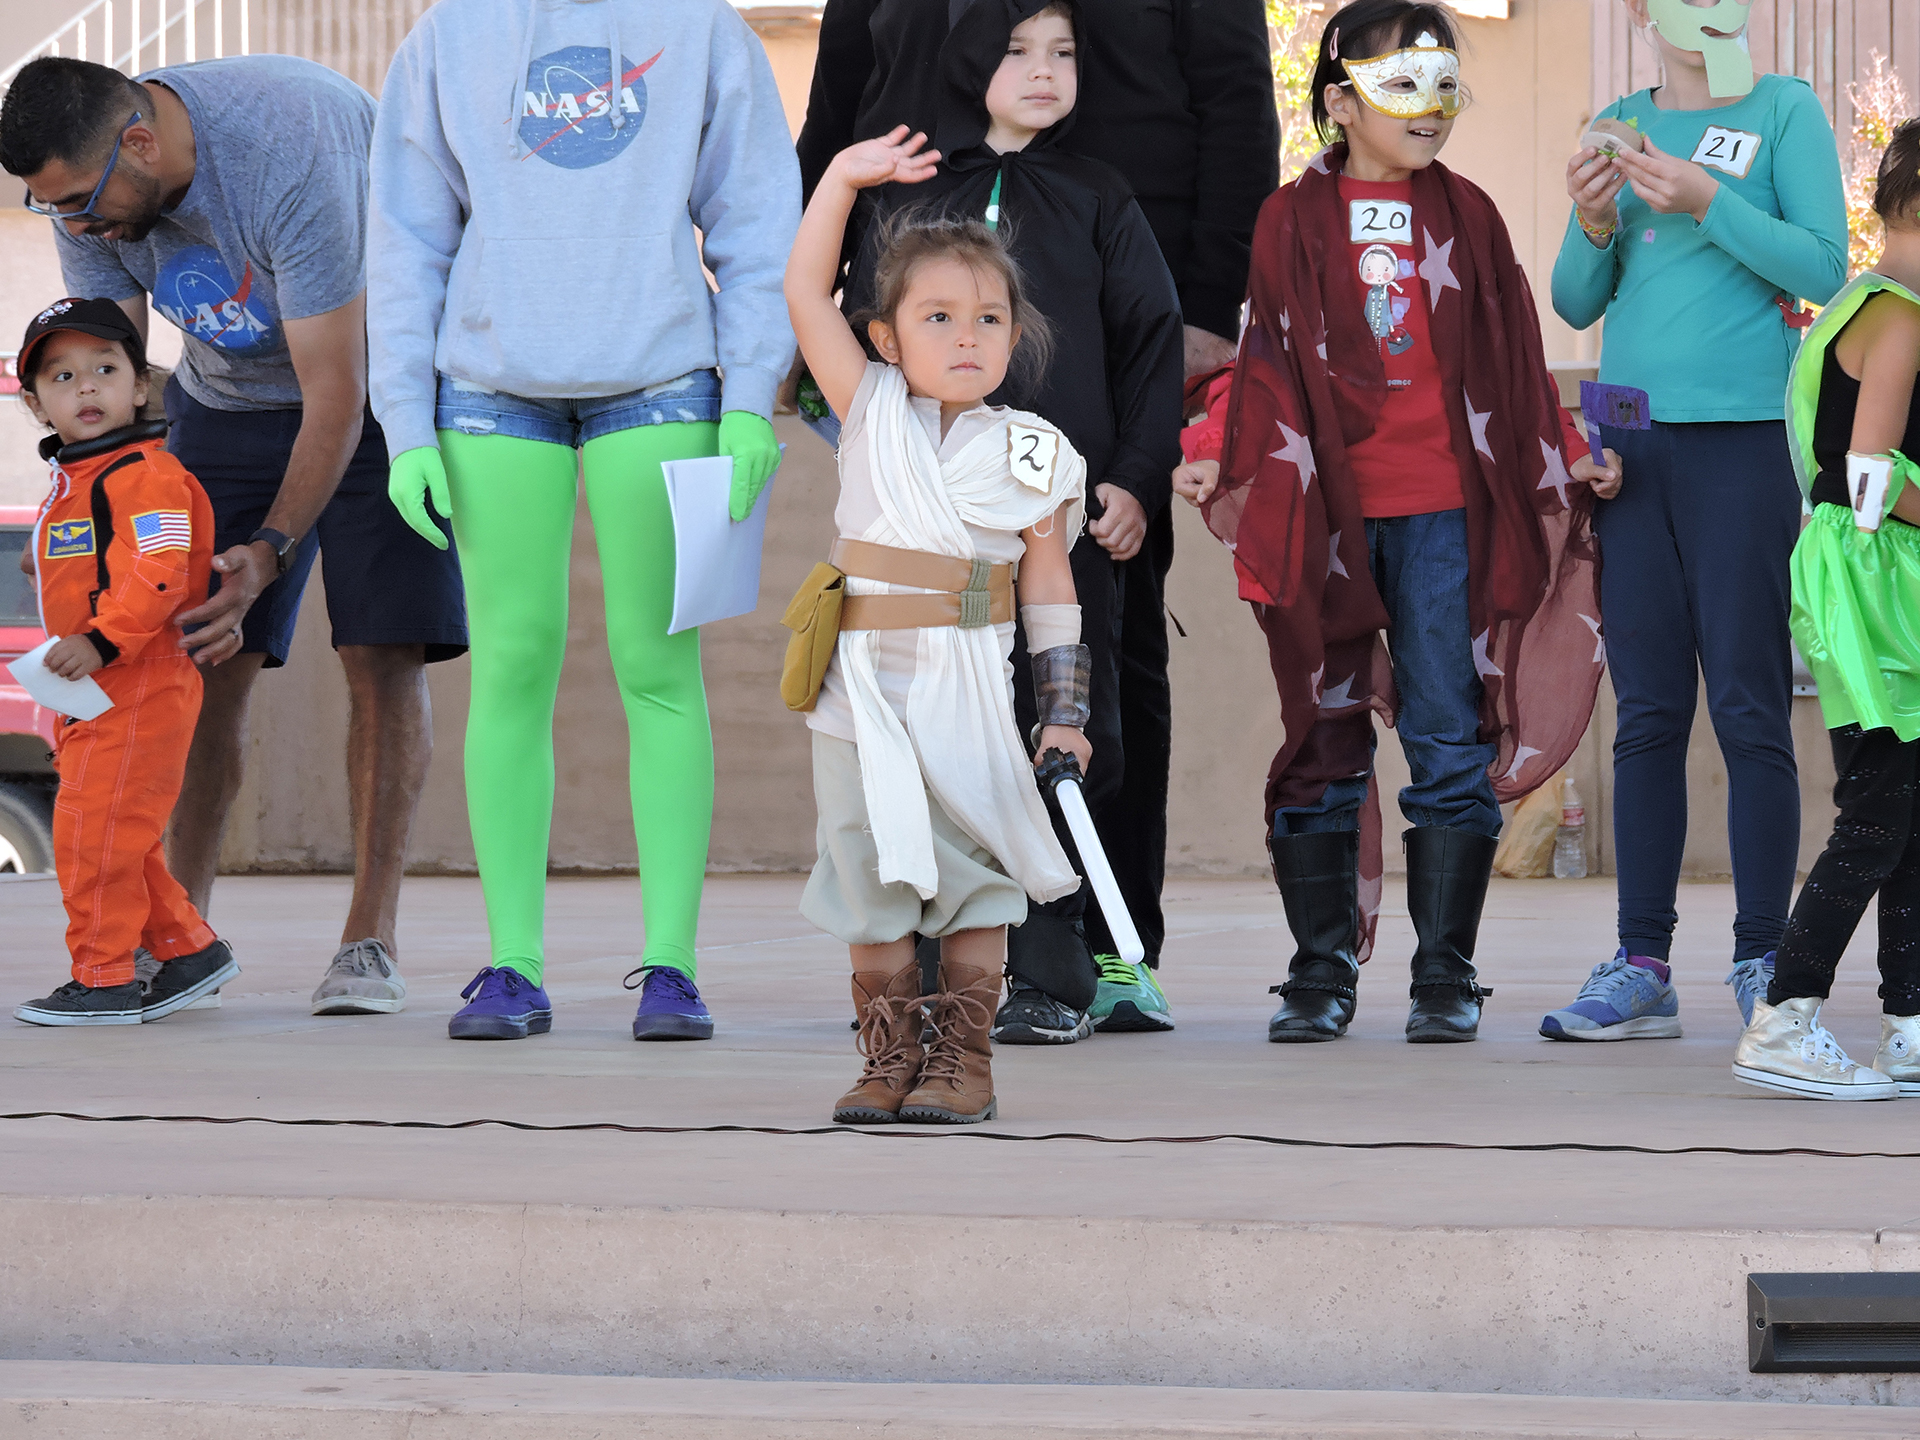 Kid attending Las Cruces Space Festival Space Walk dressed as Rey from Star Wars